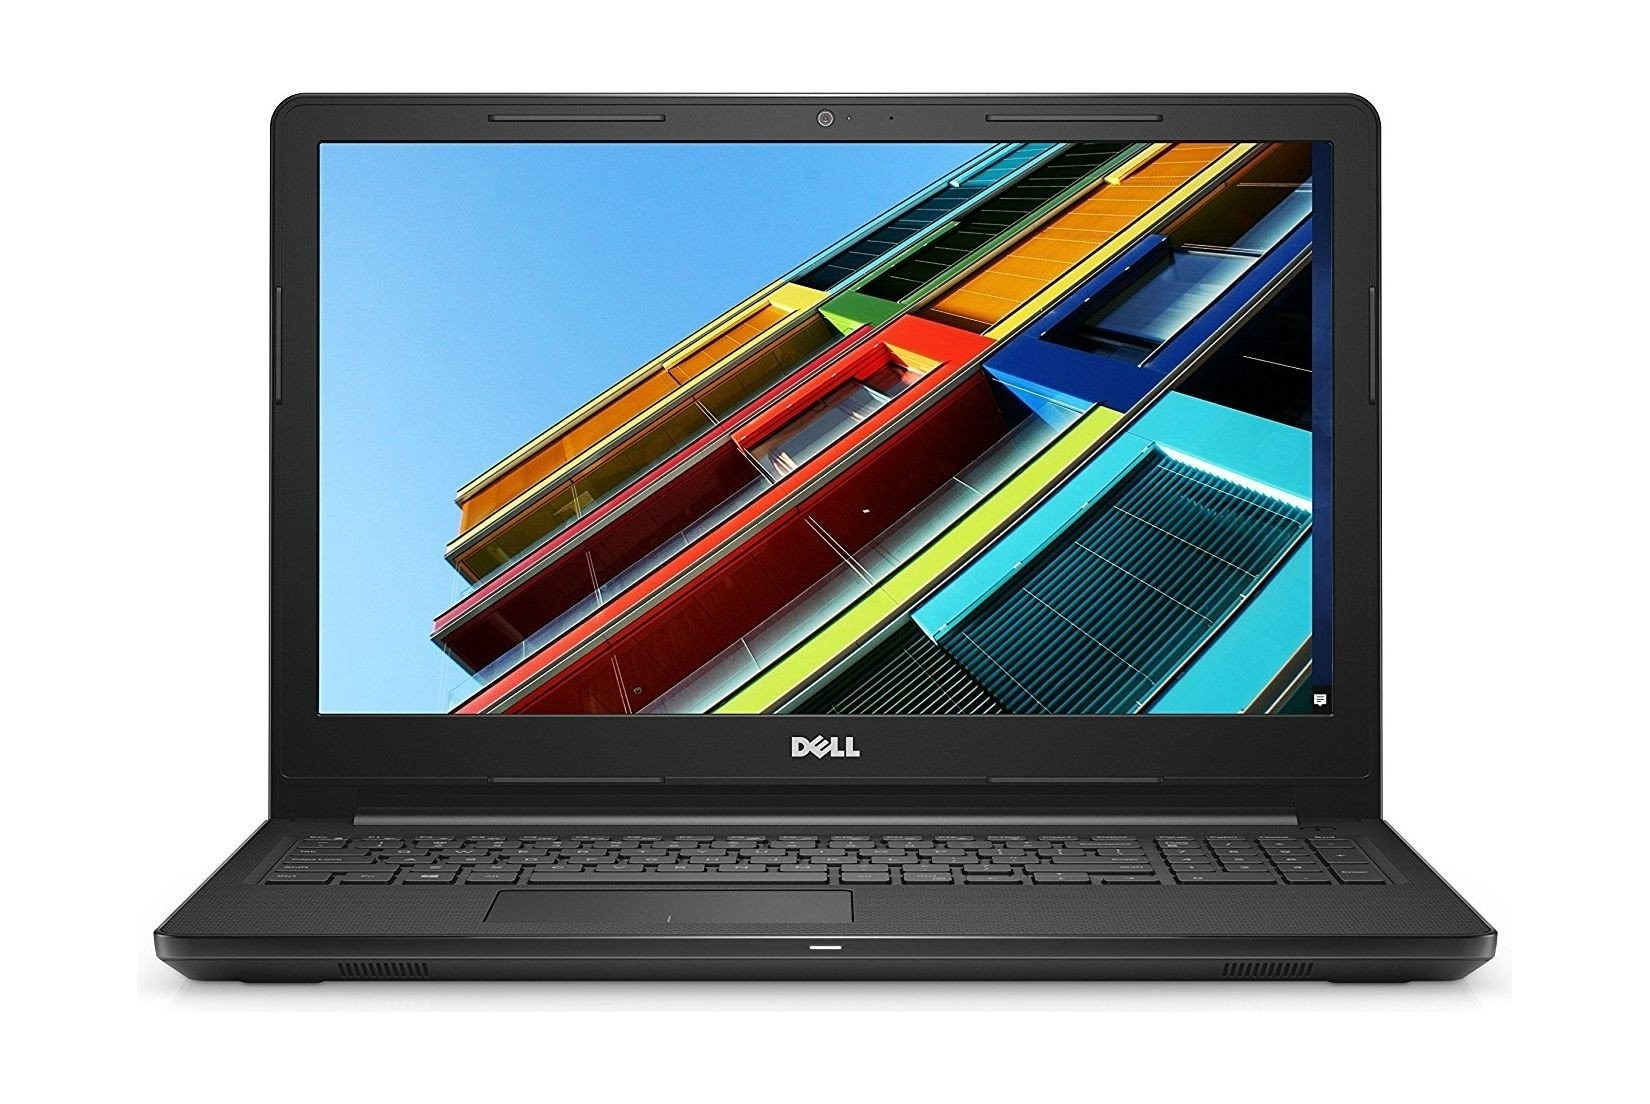 Inspiron 3567: 7th Gen Intel(R) Core(TM) i5-7200U Processor (3MB Cache up to 3.1 GHz) 15.6-inch FHD (1920 x1080) Anti-Glare LED-Backlit Display 4GB DDR4 2400MHZ 256GB 2.5inch SATA Class 20 Solid State Drive Tray load DVD Drive (Reads and Writes to DVD/CD AMD Radeon(TM) R5 M430 2GB DDR3 802.11ac + Bluetooth 4.1 Dual Band 2.4&5 GHz 1x1 Windows 10 Home Single Language (64Bit) 1YR Next business Day